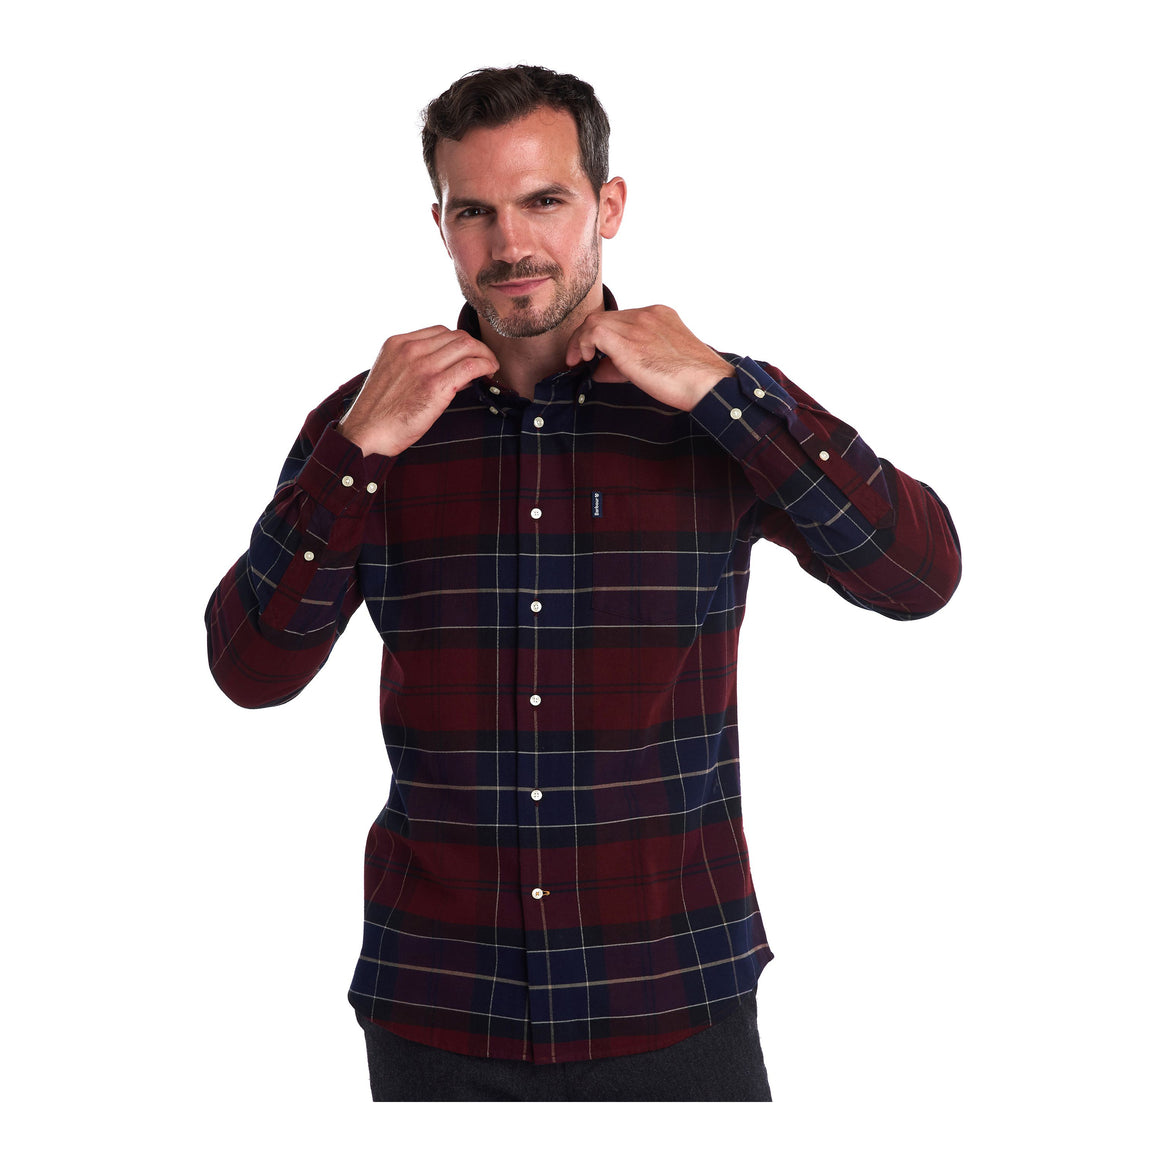 Lustleigh Shirt for Men in Merlot